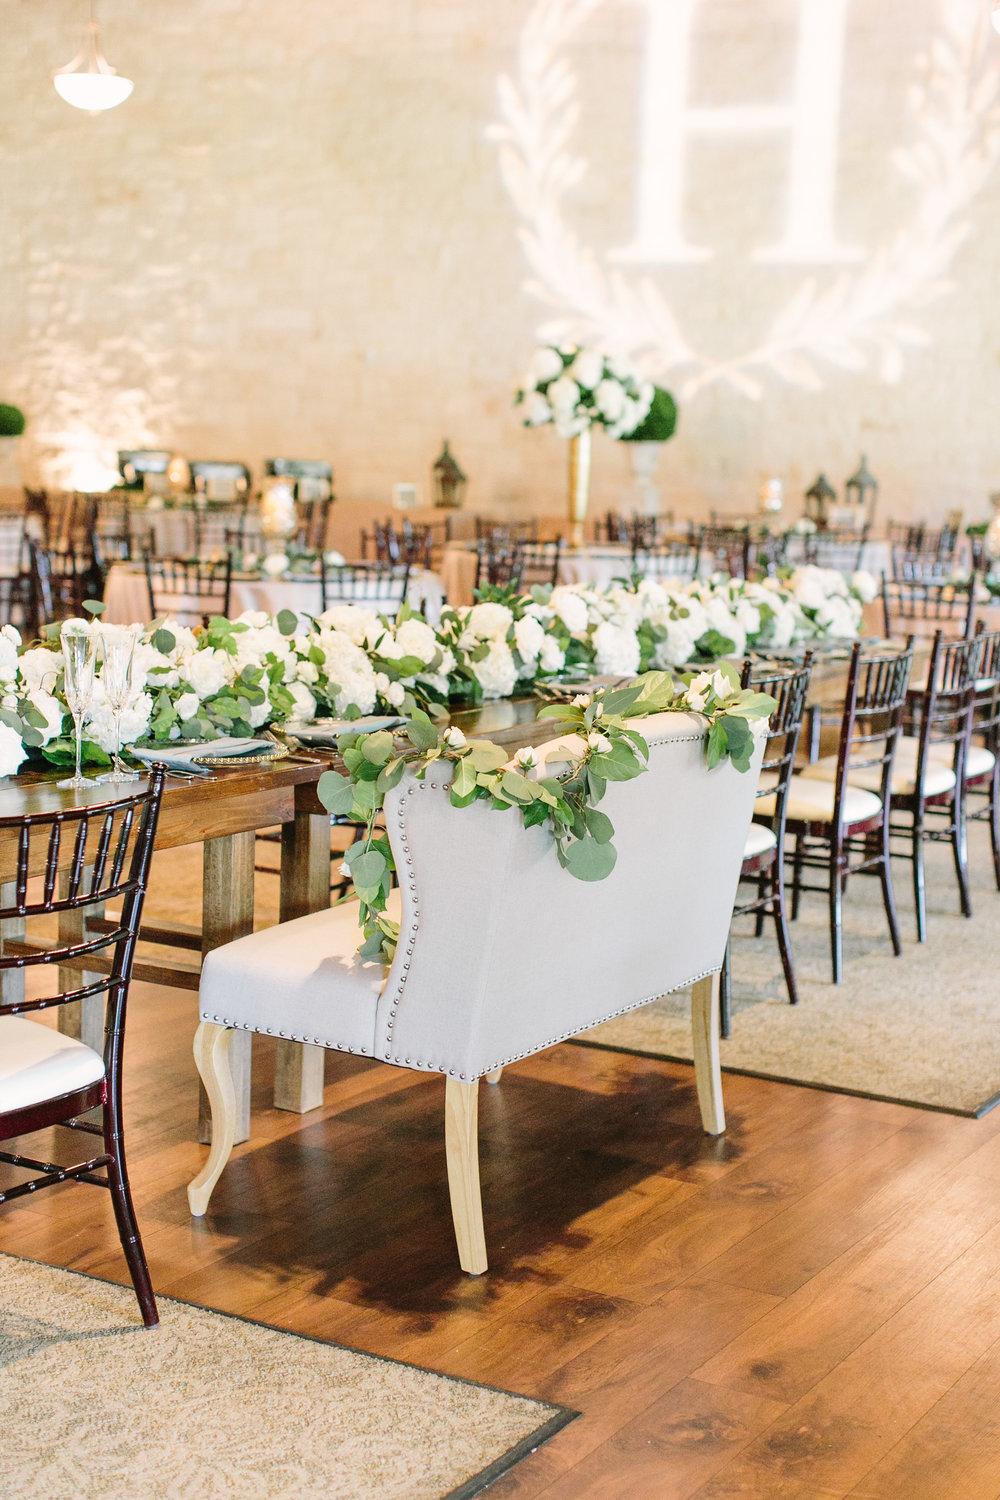 head-table-couch-garland-greenery-rental-by-maxit-flower-design-in-houston-texas